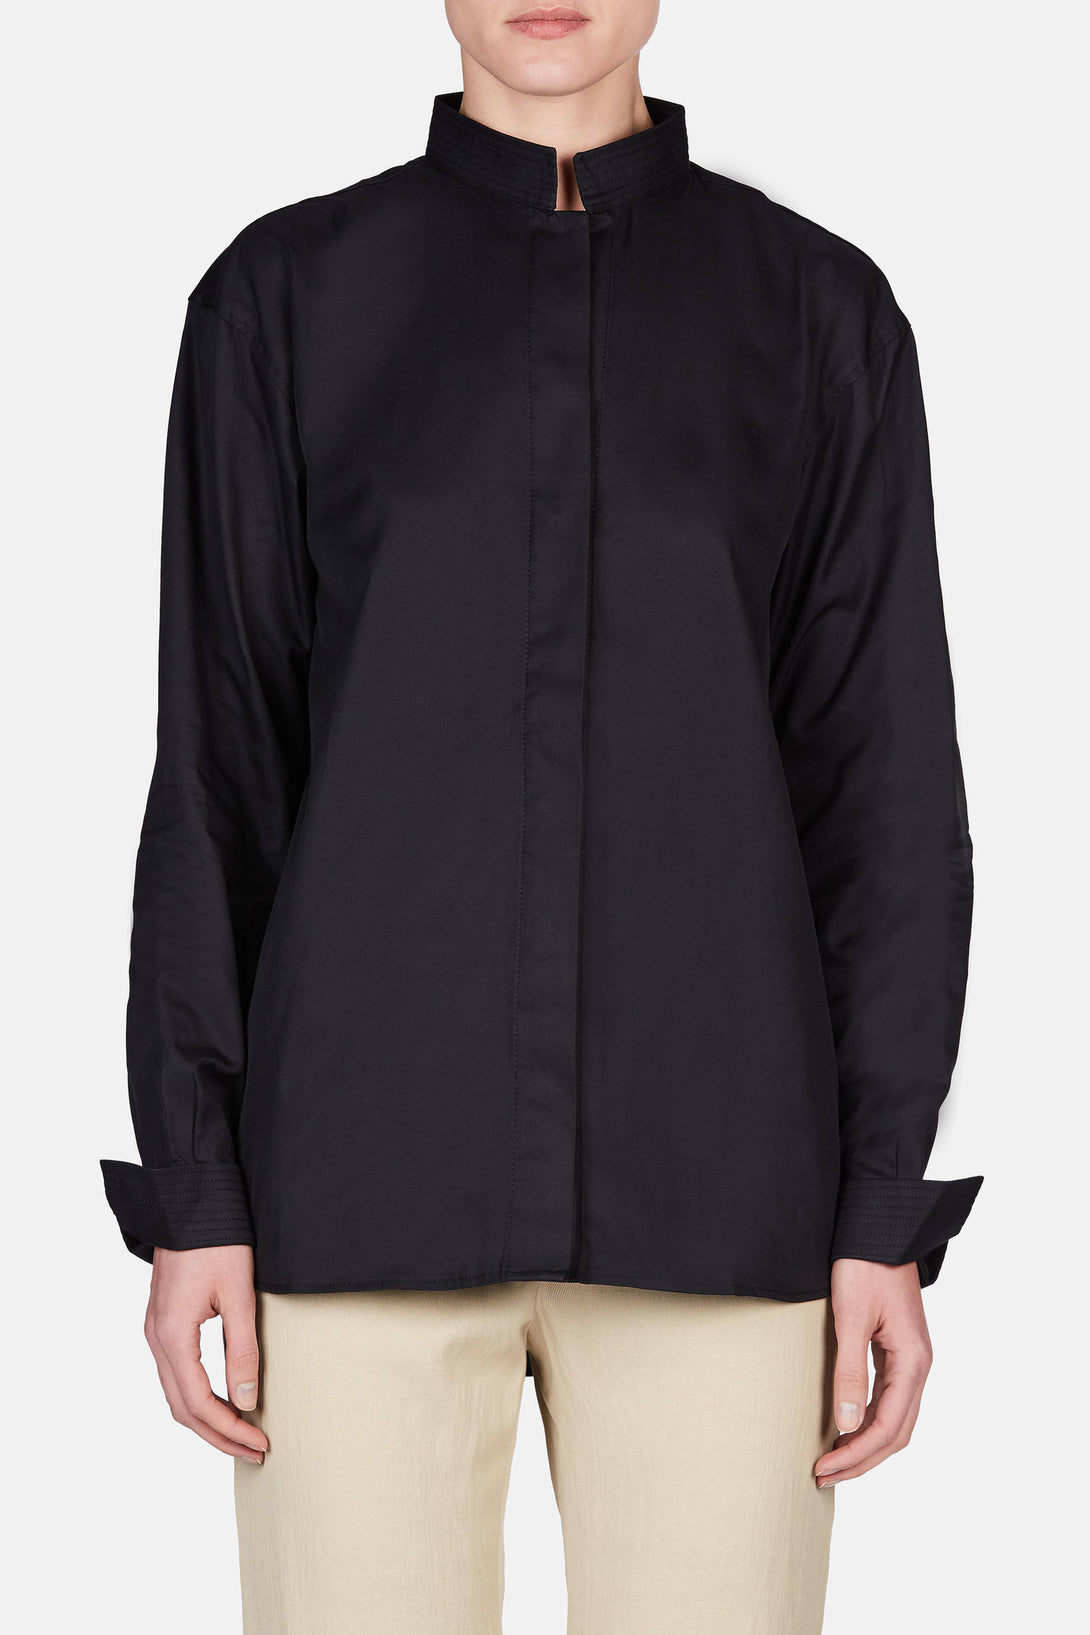 Kenya Shirt - Black